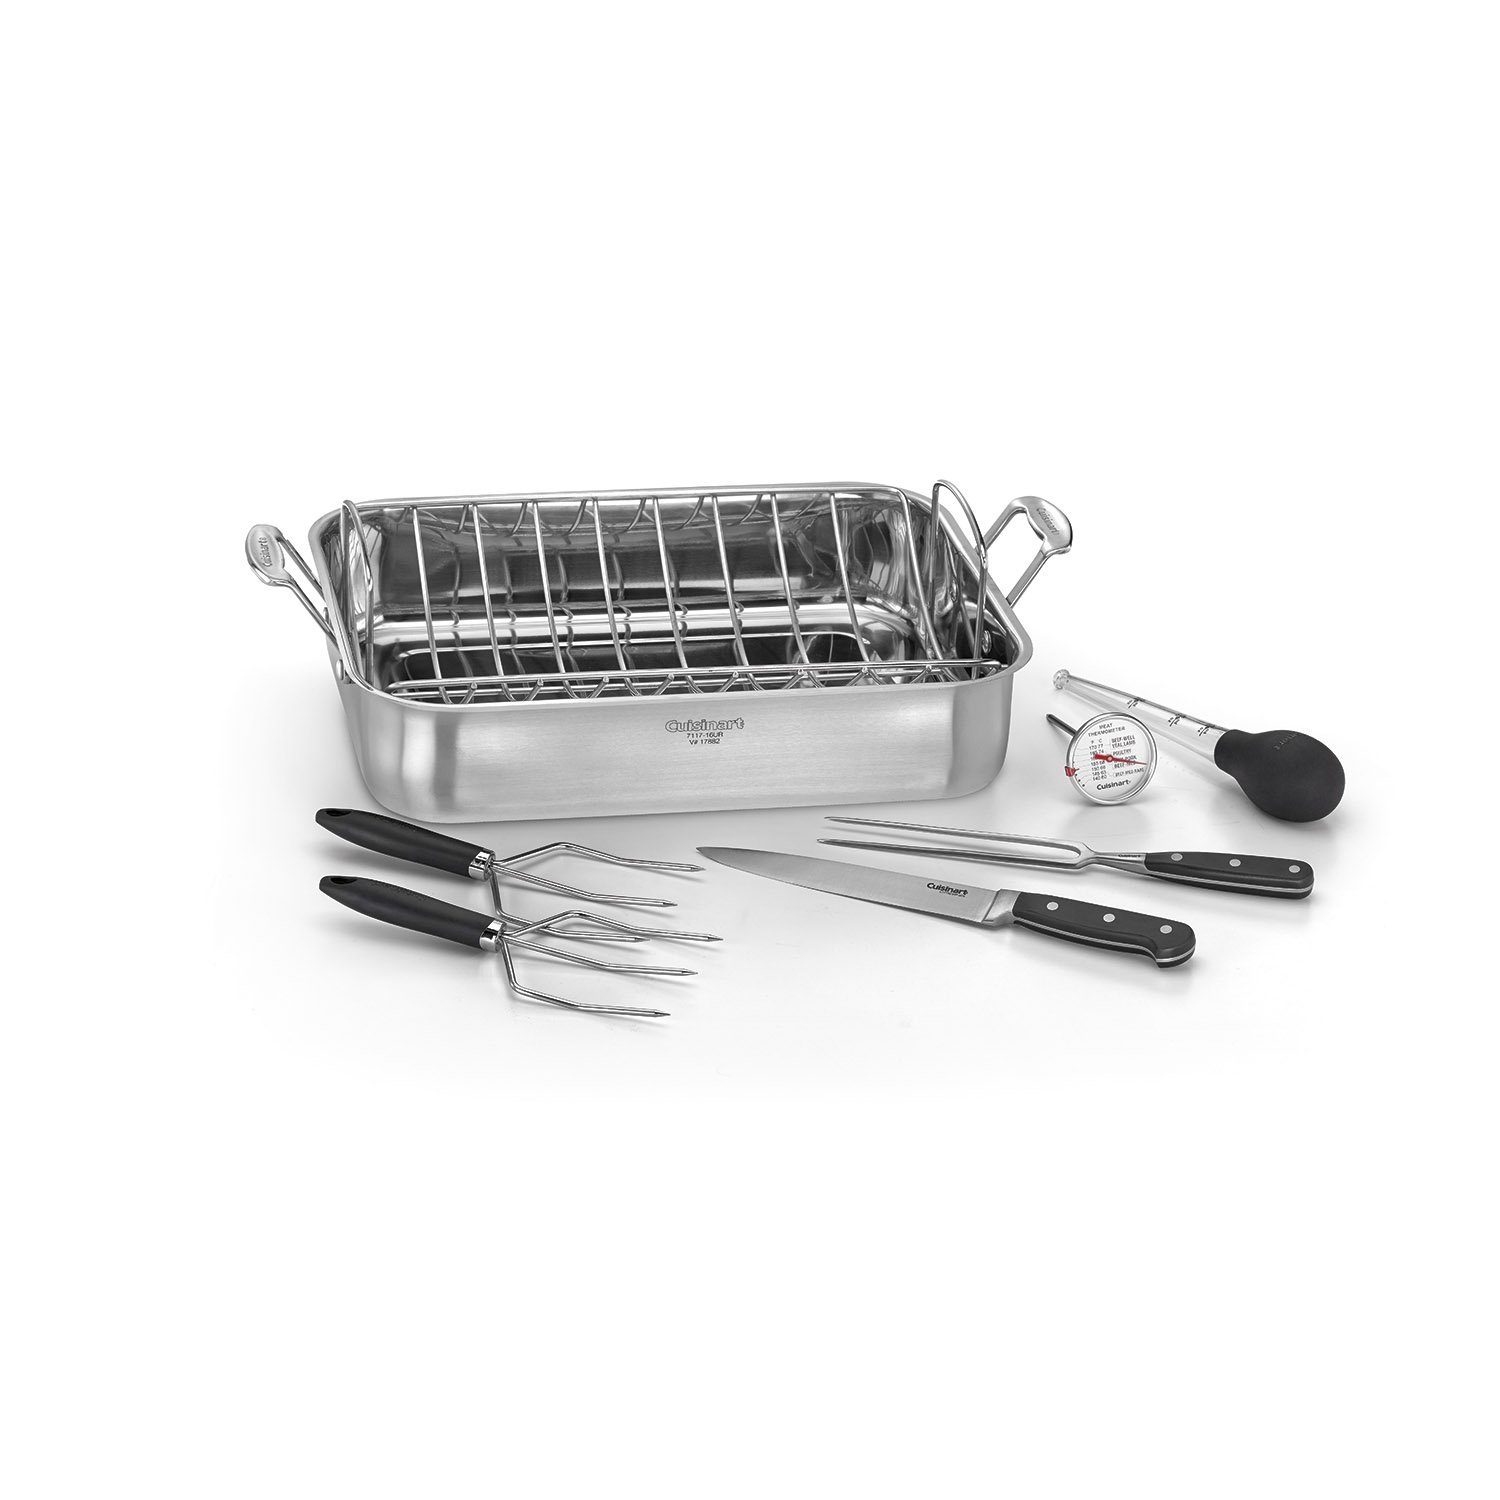 "Cuisinart 16"" Roasting Pan with Rack"